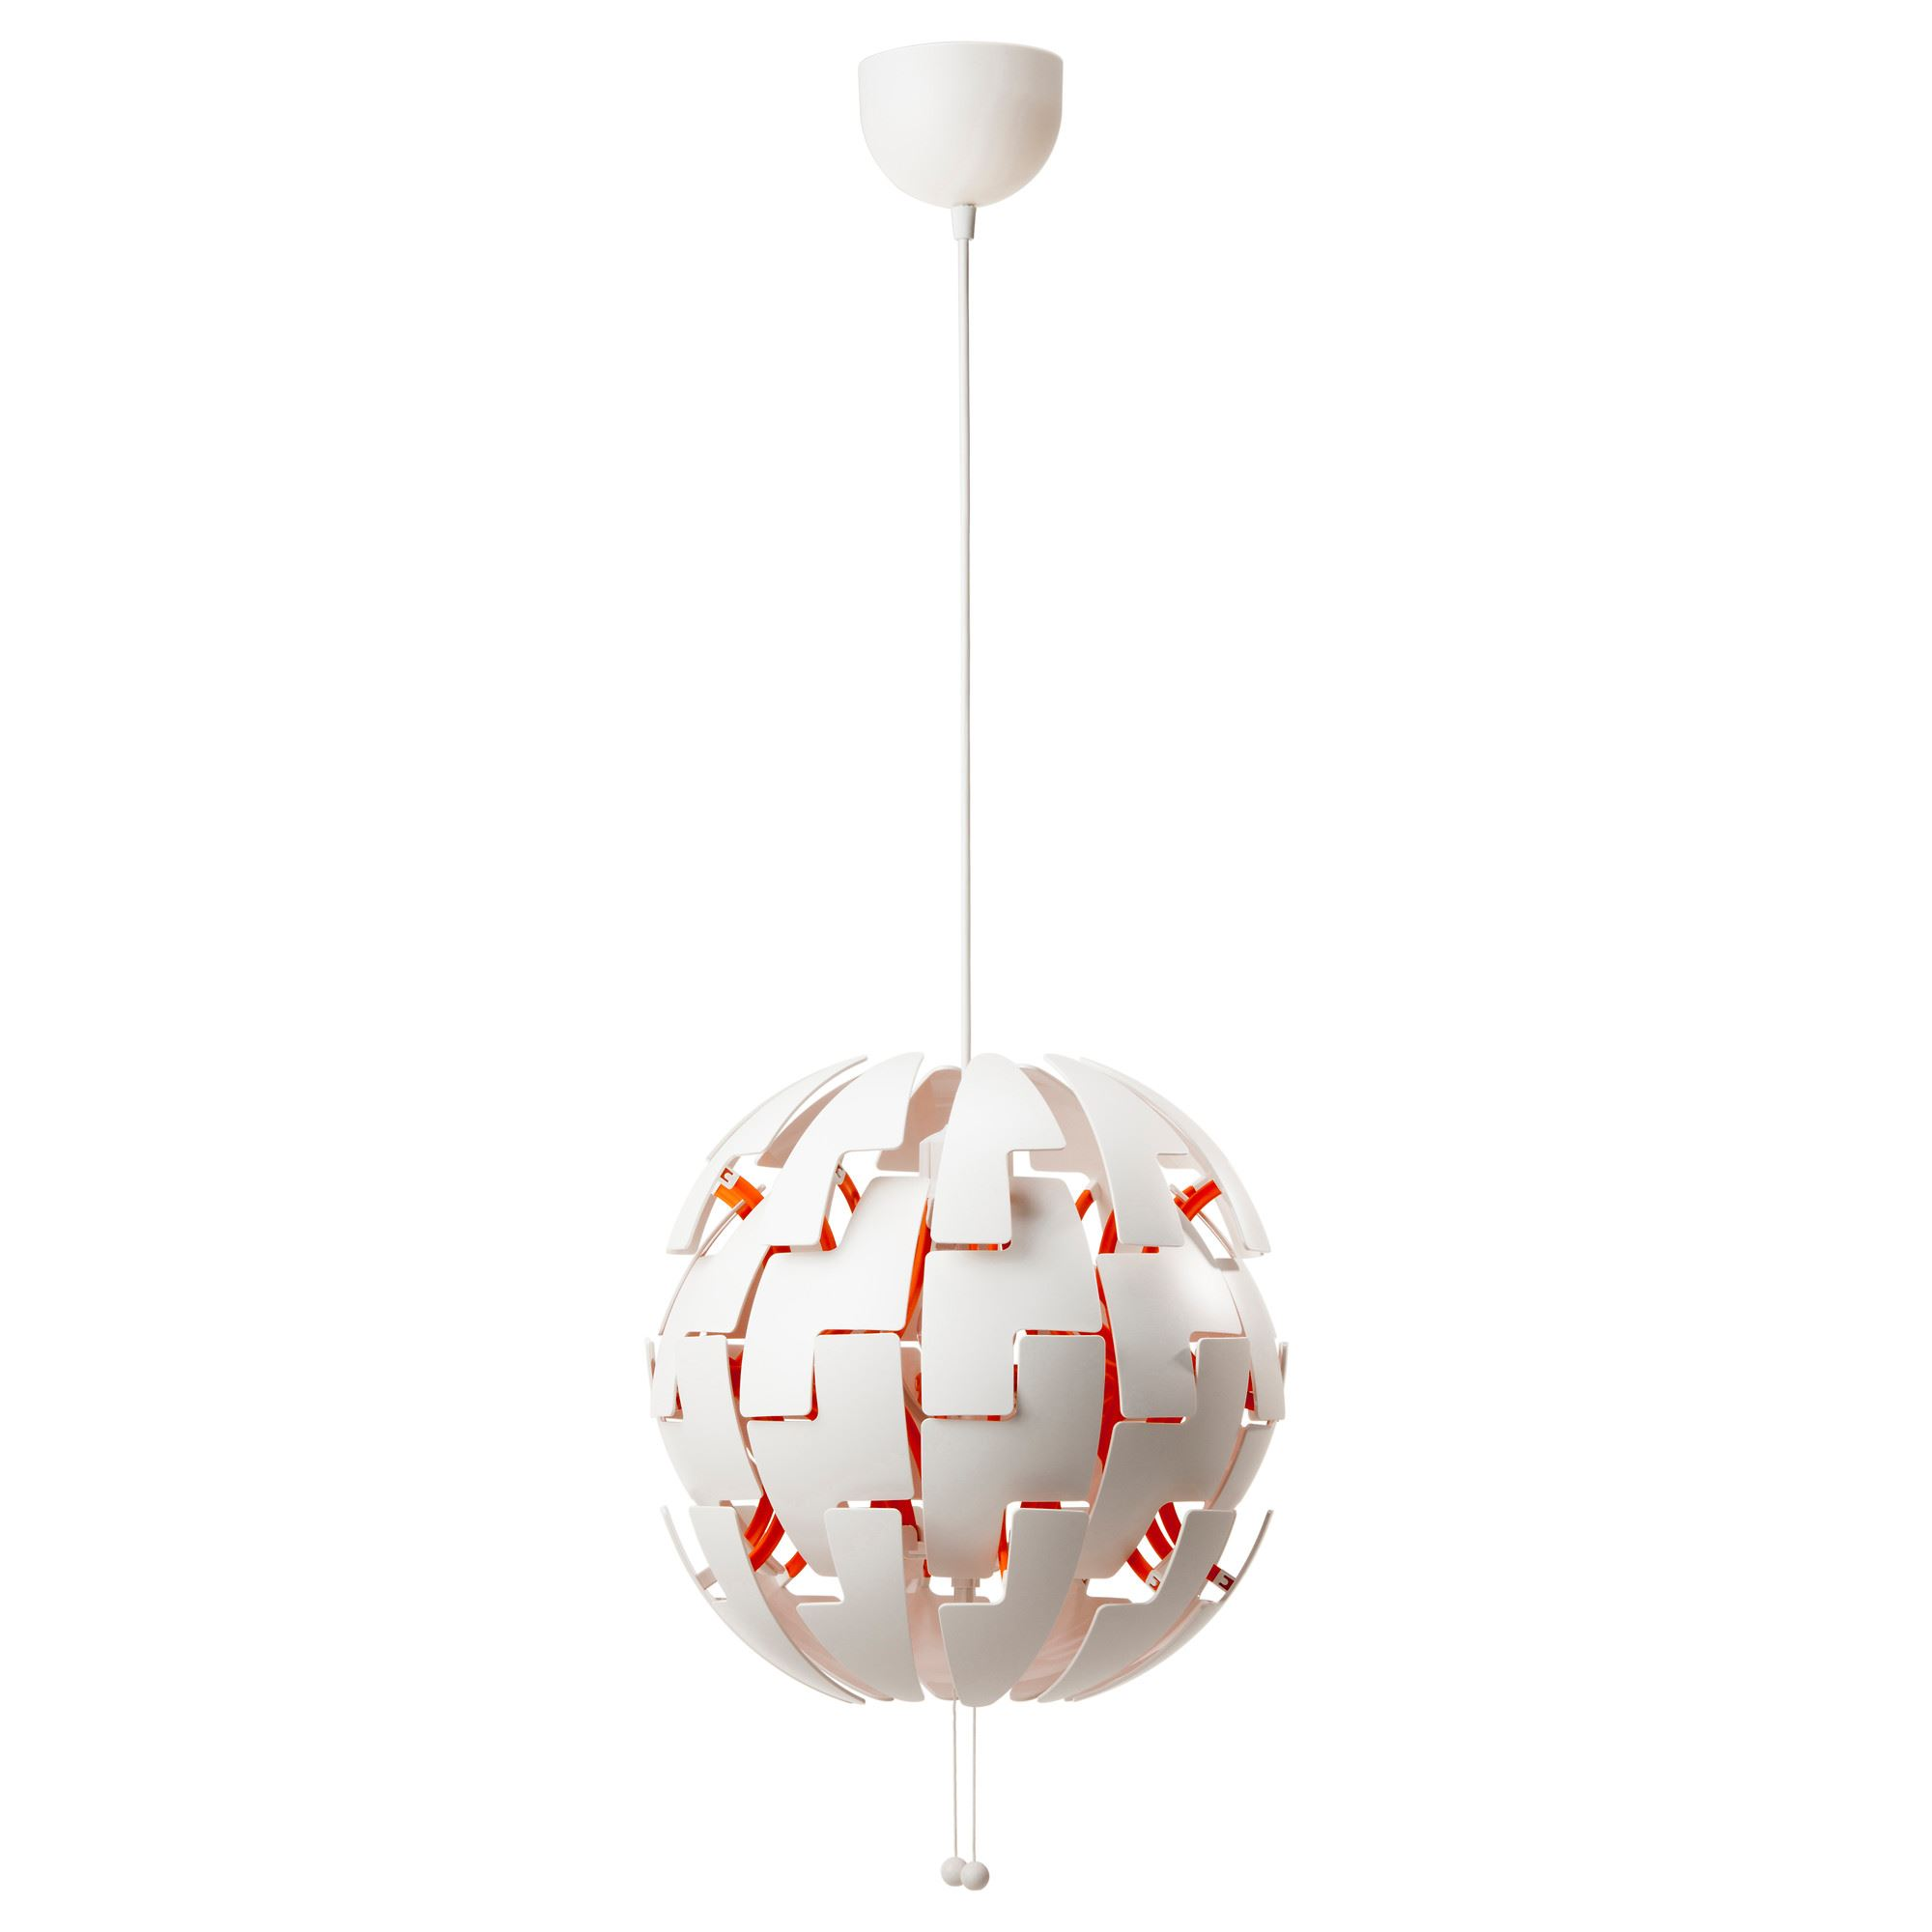 ikea lighting chandeliers. Ceiling Lamps And Spotlights. IKEA PS 2014 Pendant Lamp Ikea Lighting Chandeliers N